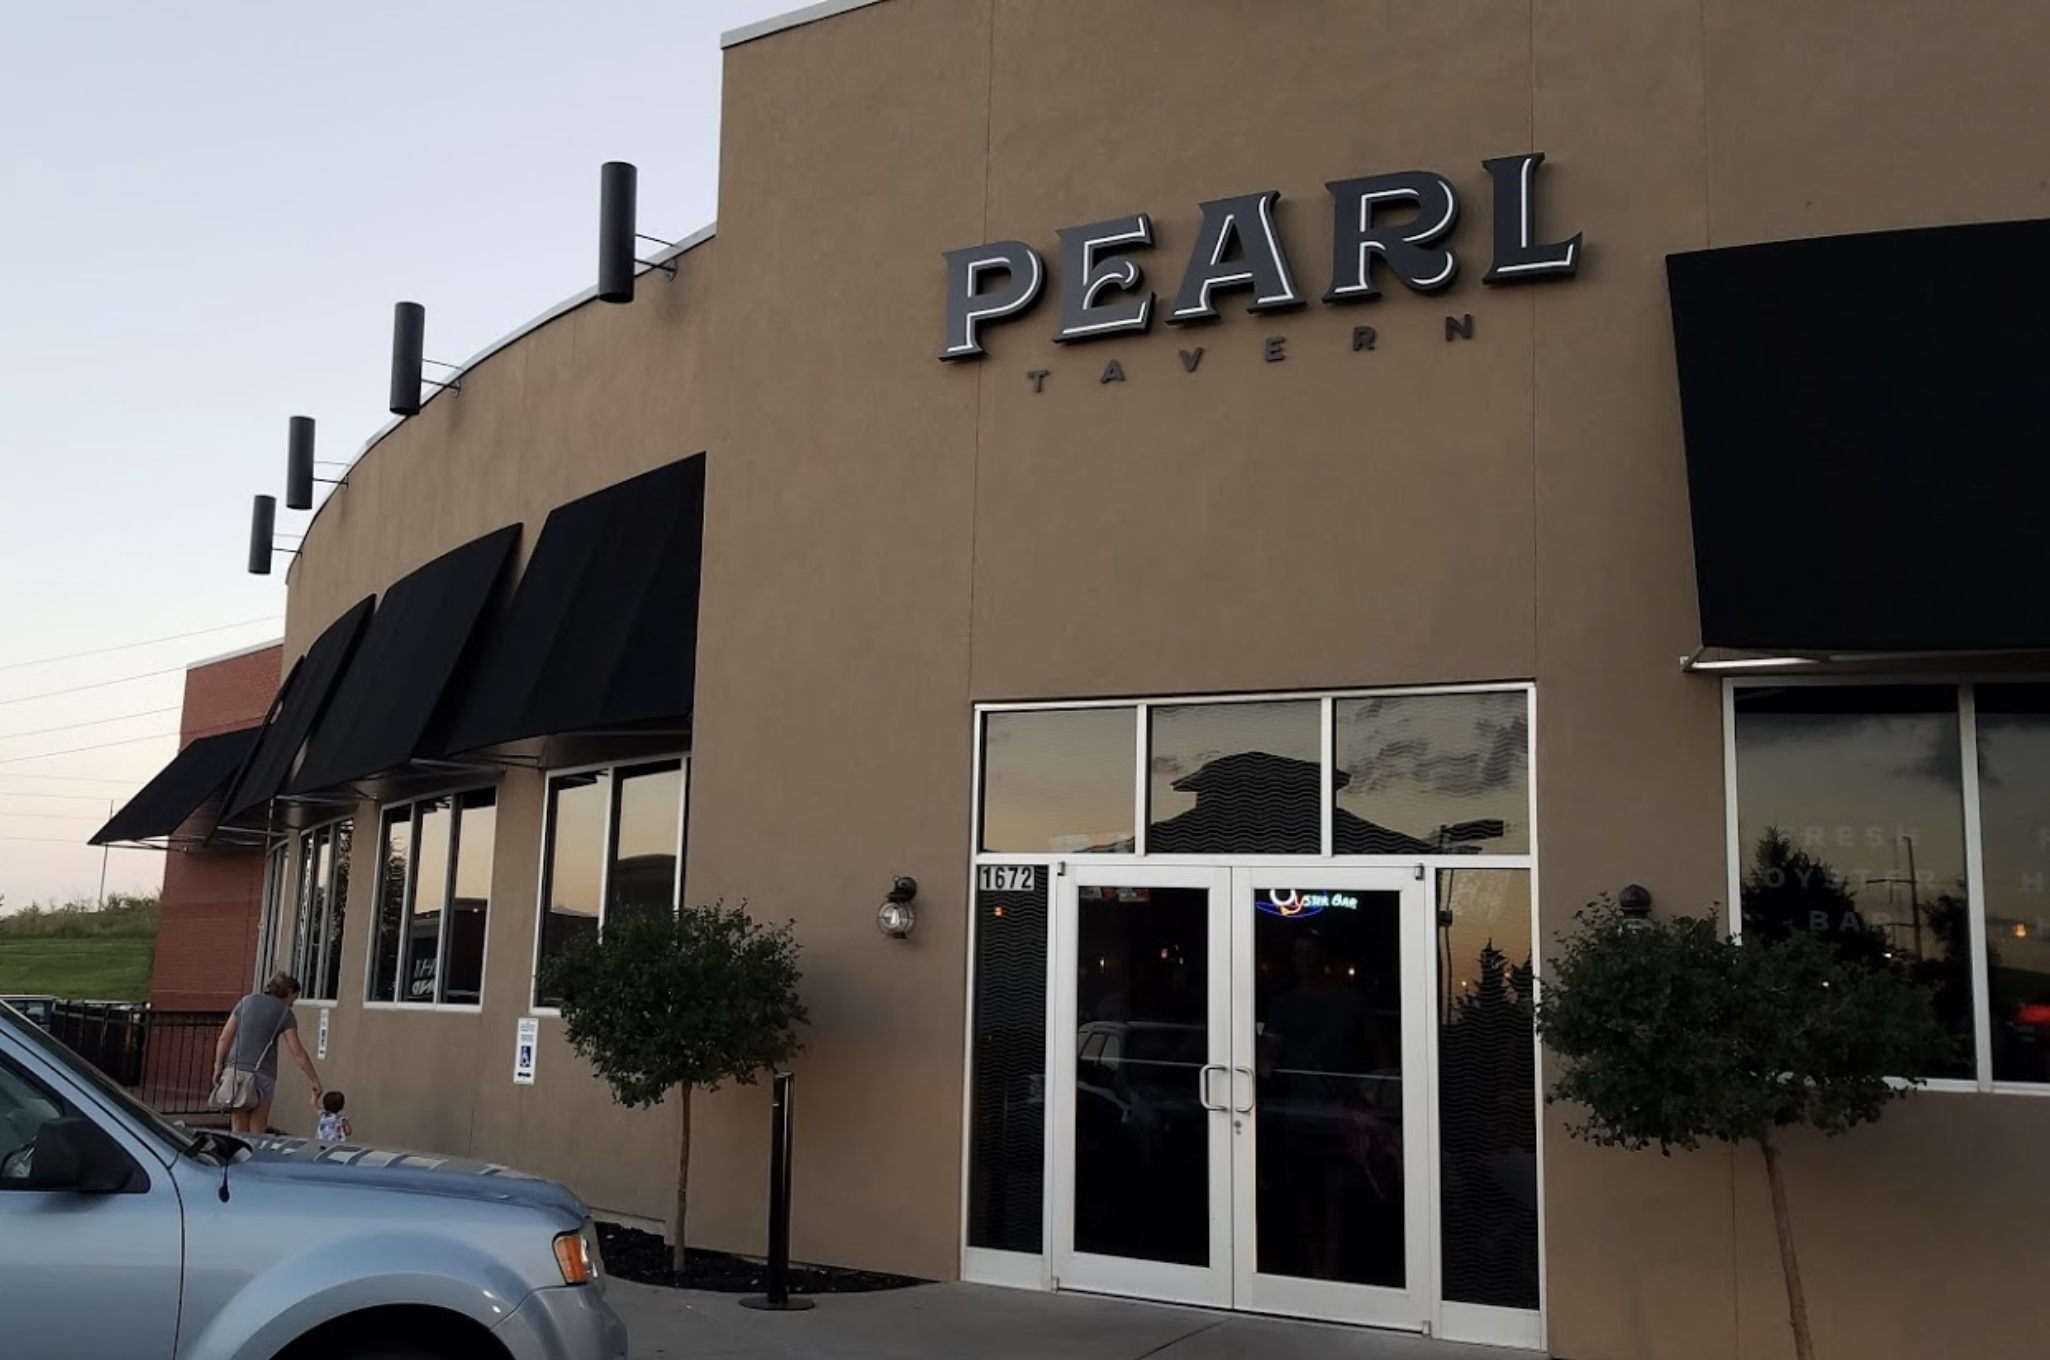 Exterior of Pearl Tavern building